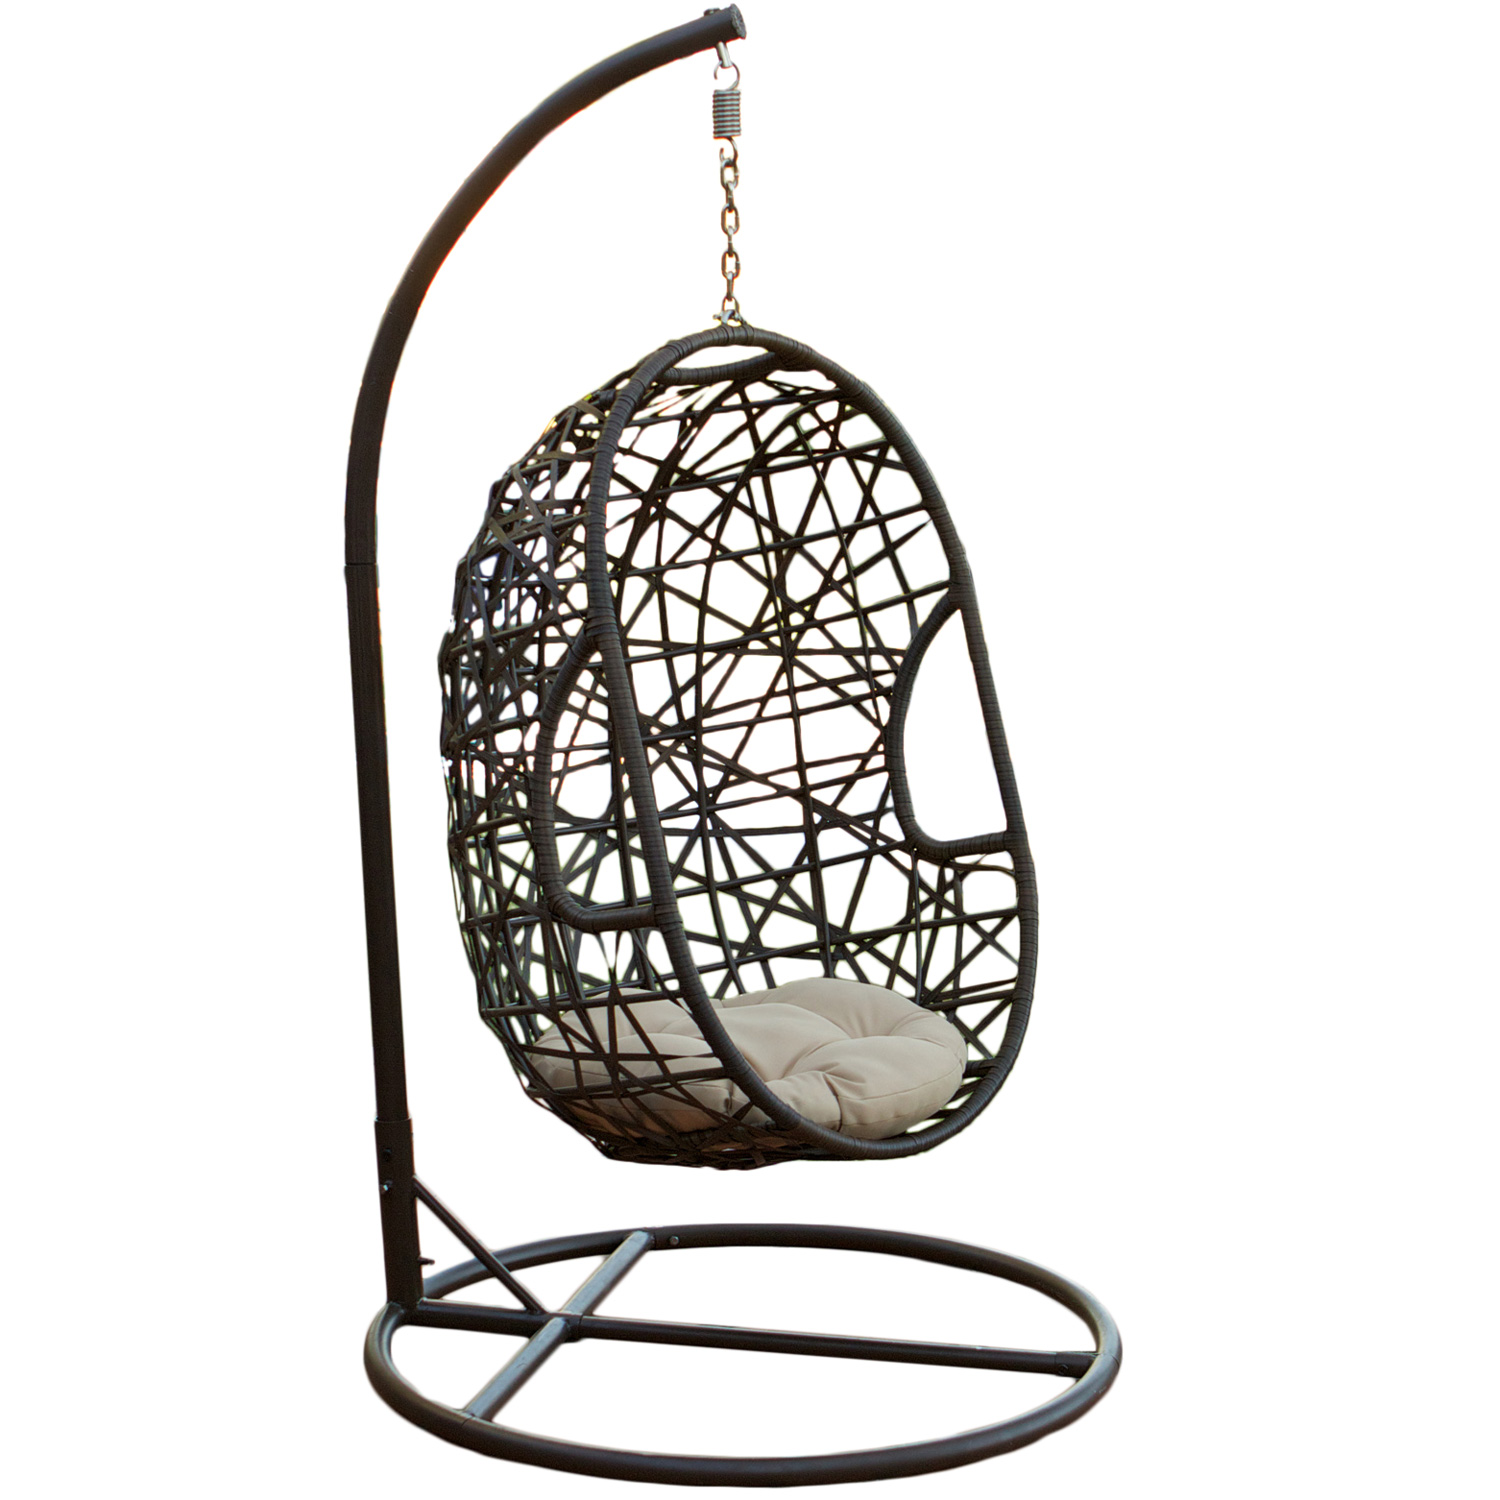 Egg Shaped Wicker Chair Best Selling Home Decor Egg Shaped Swing Chair Home